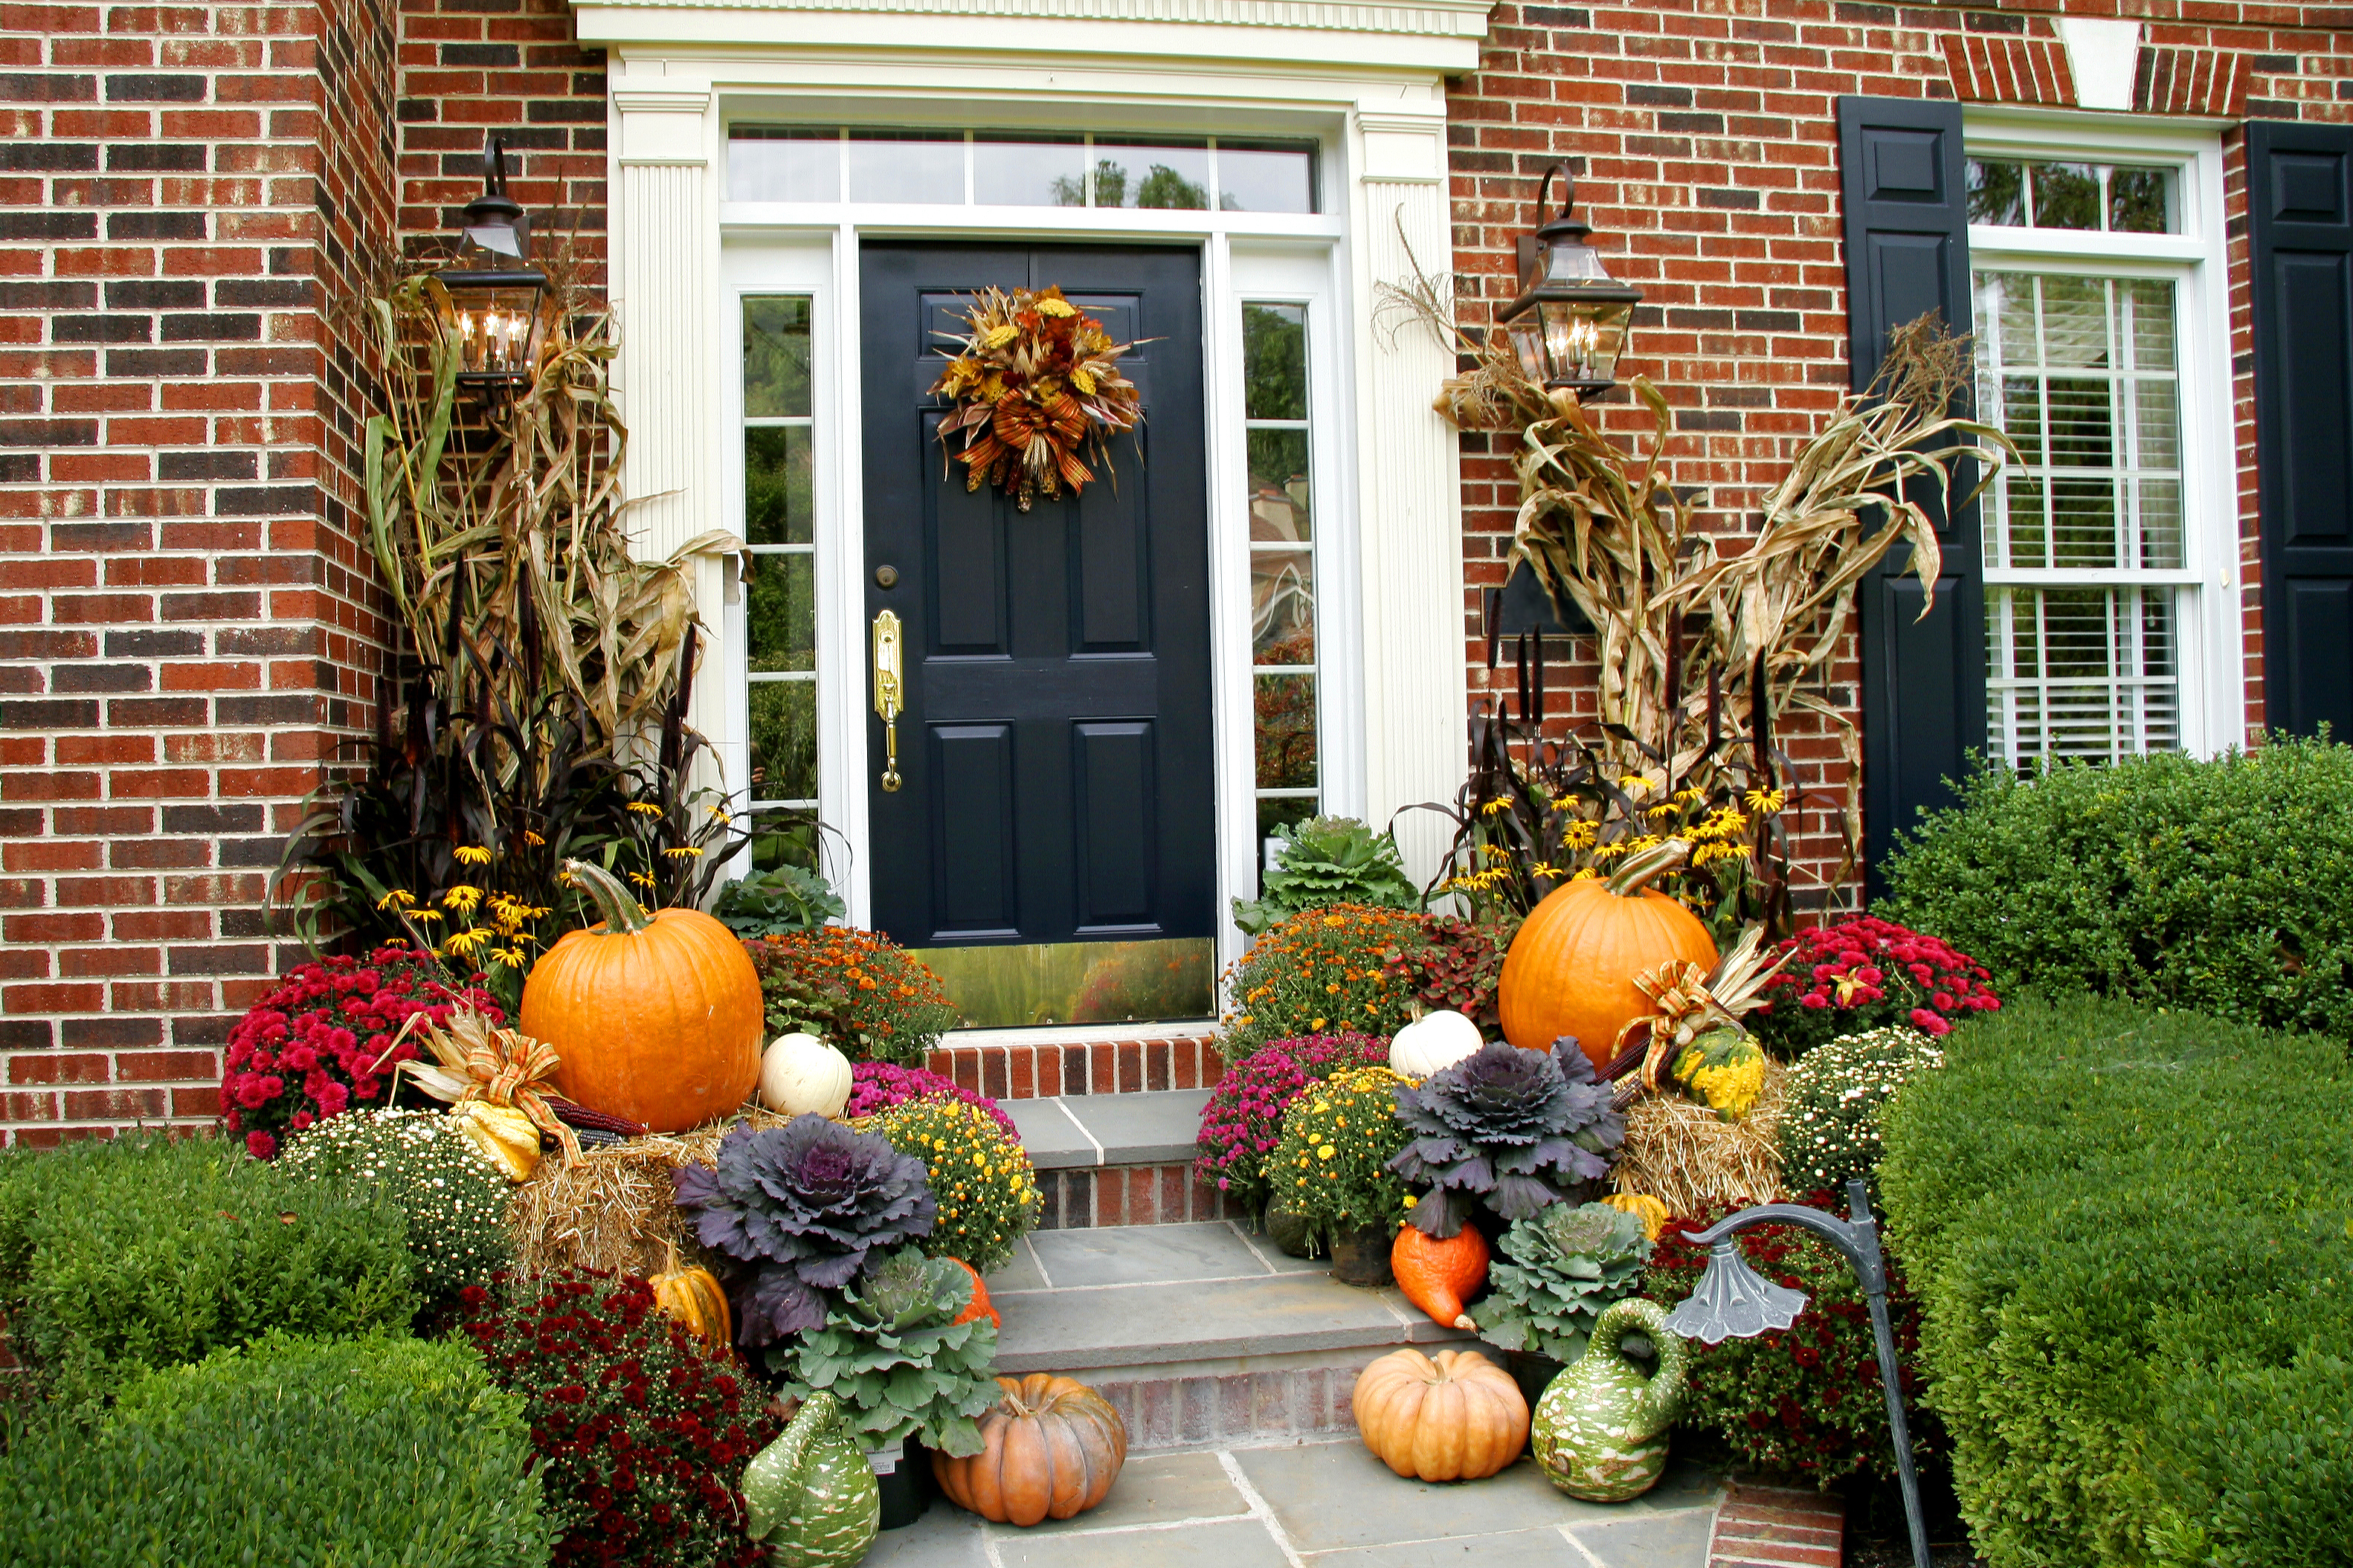 Delicieux 10 Fall Home Decorating Ideas